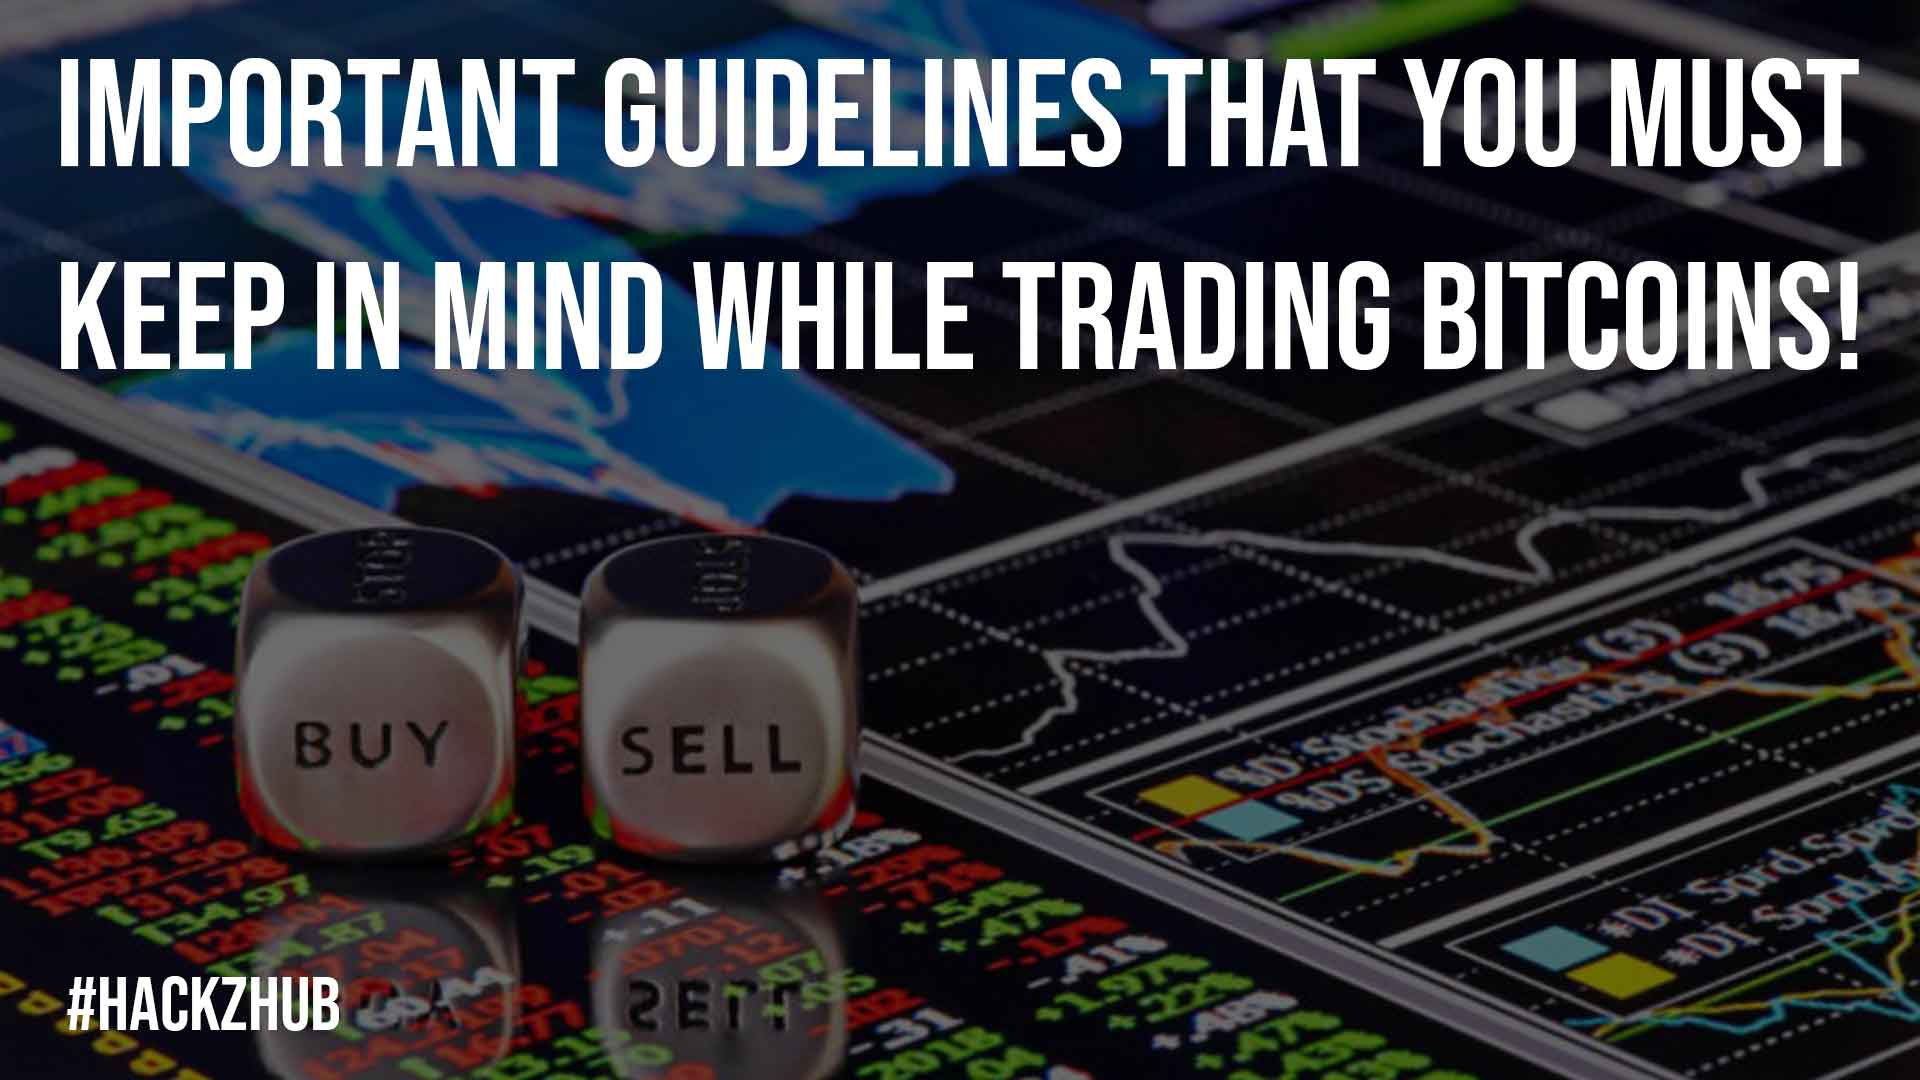 Important Guidelines That You Must Keep in Mind While Trading Bitcoins